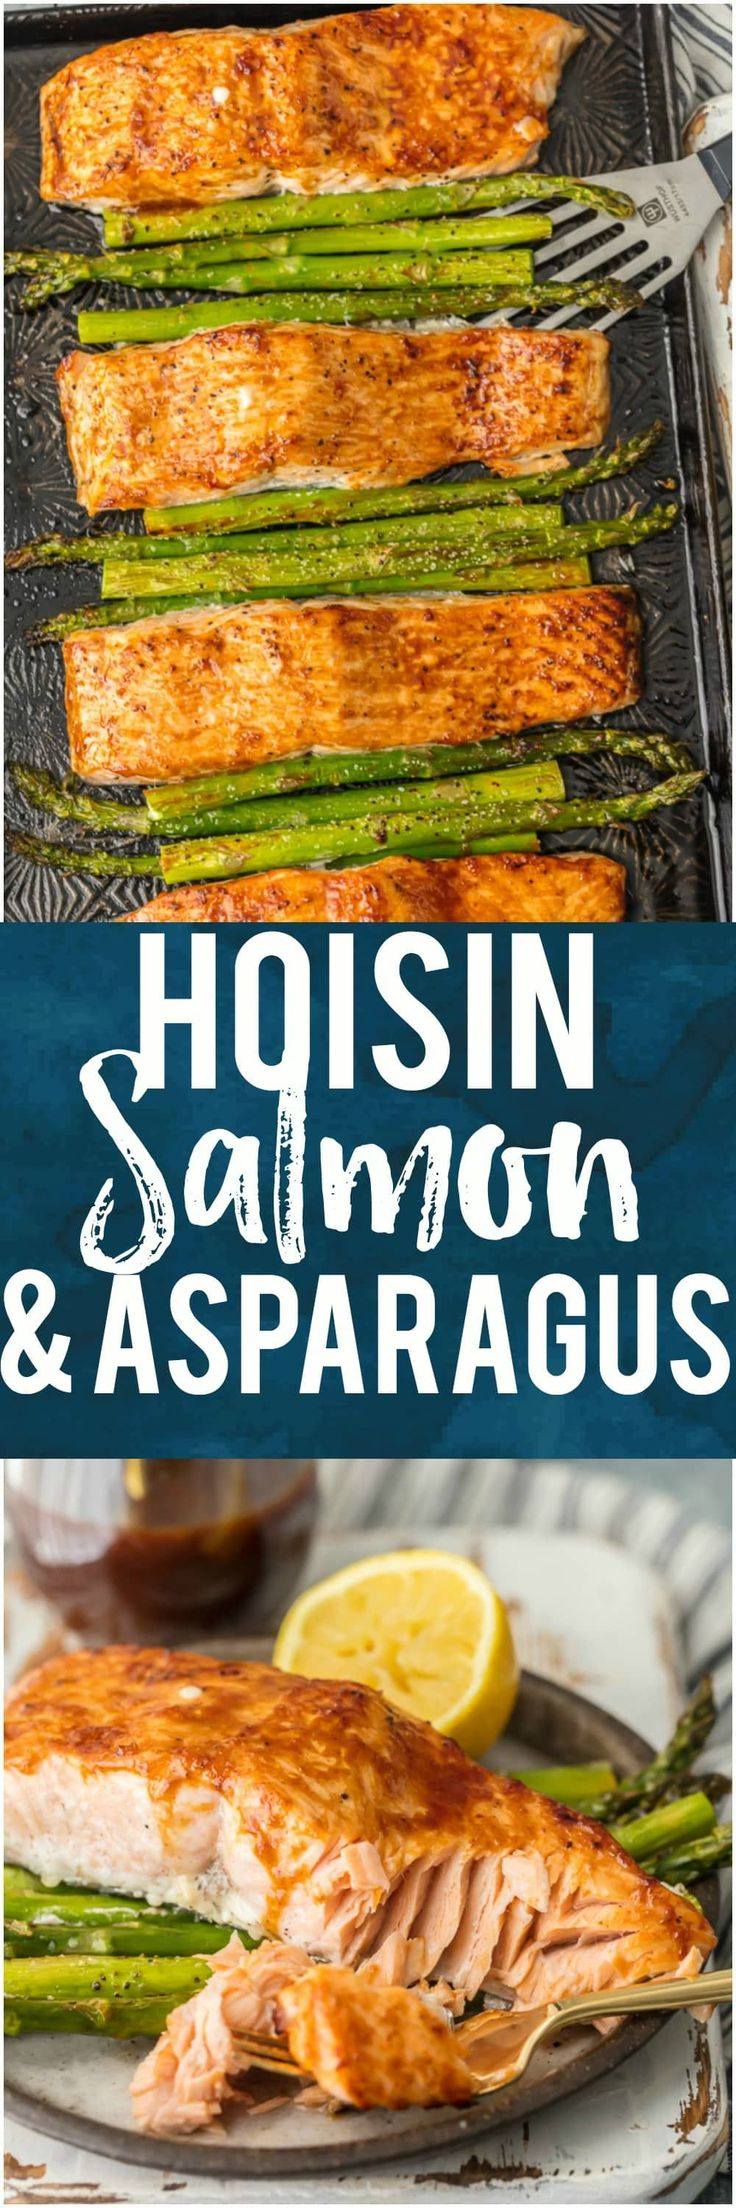 This HOISIN SALMON AND ASPARAGUS RECIPE has it all! It's a simple and healthy seafood recipe made entirely on ONE SHEET PAN. So much flavor and so little prep/cleanup. So much to love about this sheet pan glazed salmon. #seafood #healthy #salmon #sheetpan